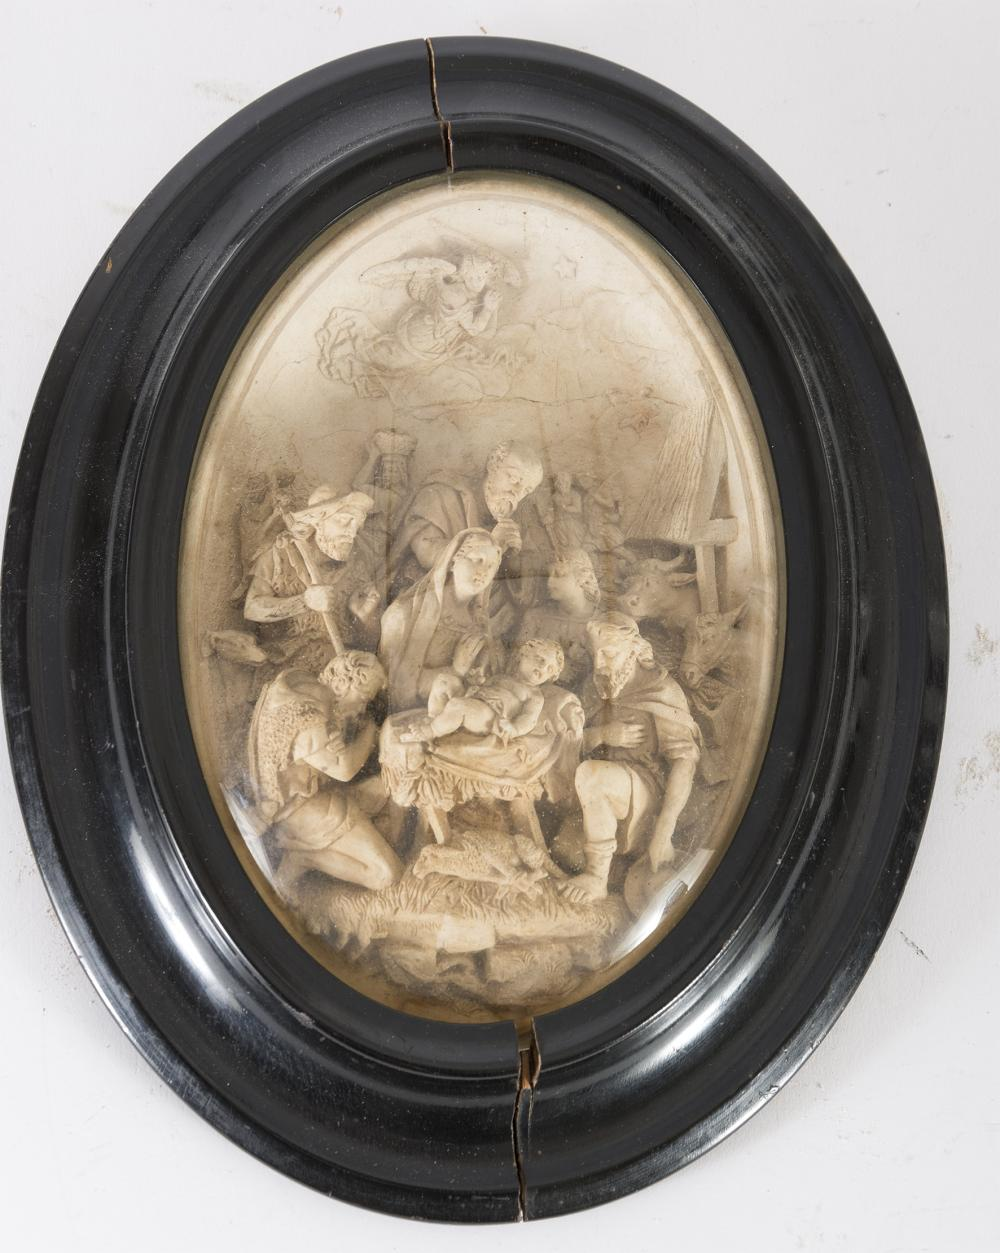 SMALL HIGH-RELIEF SCULPTURE IN FOAM, NAPLES 19TH CENTURY